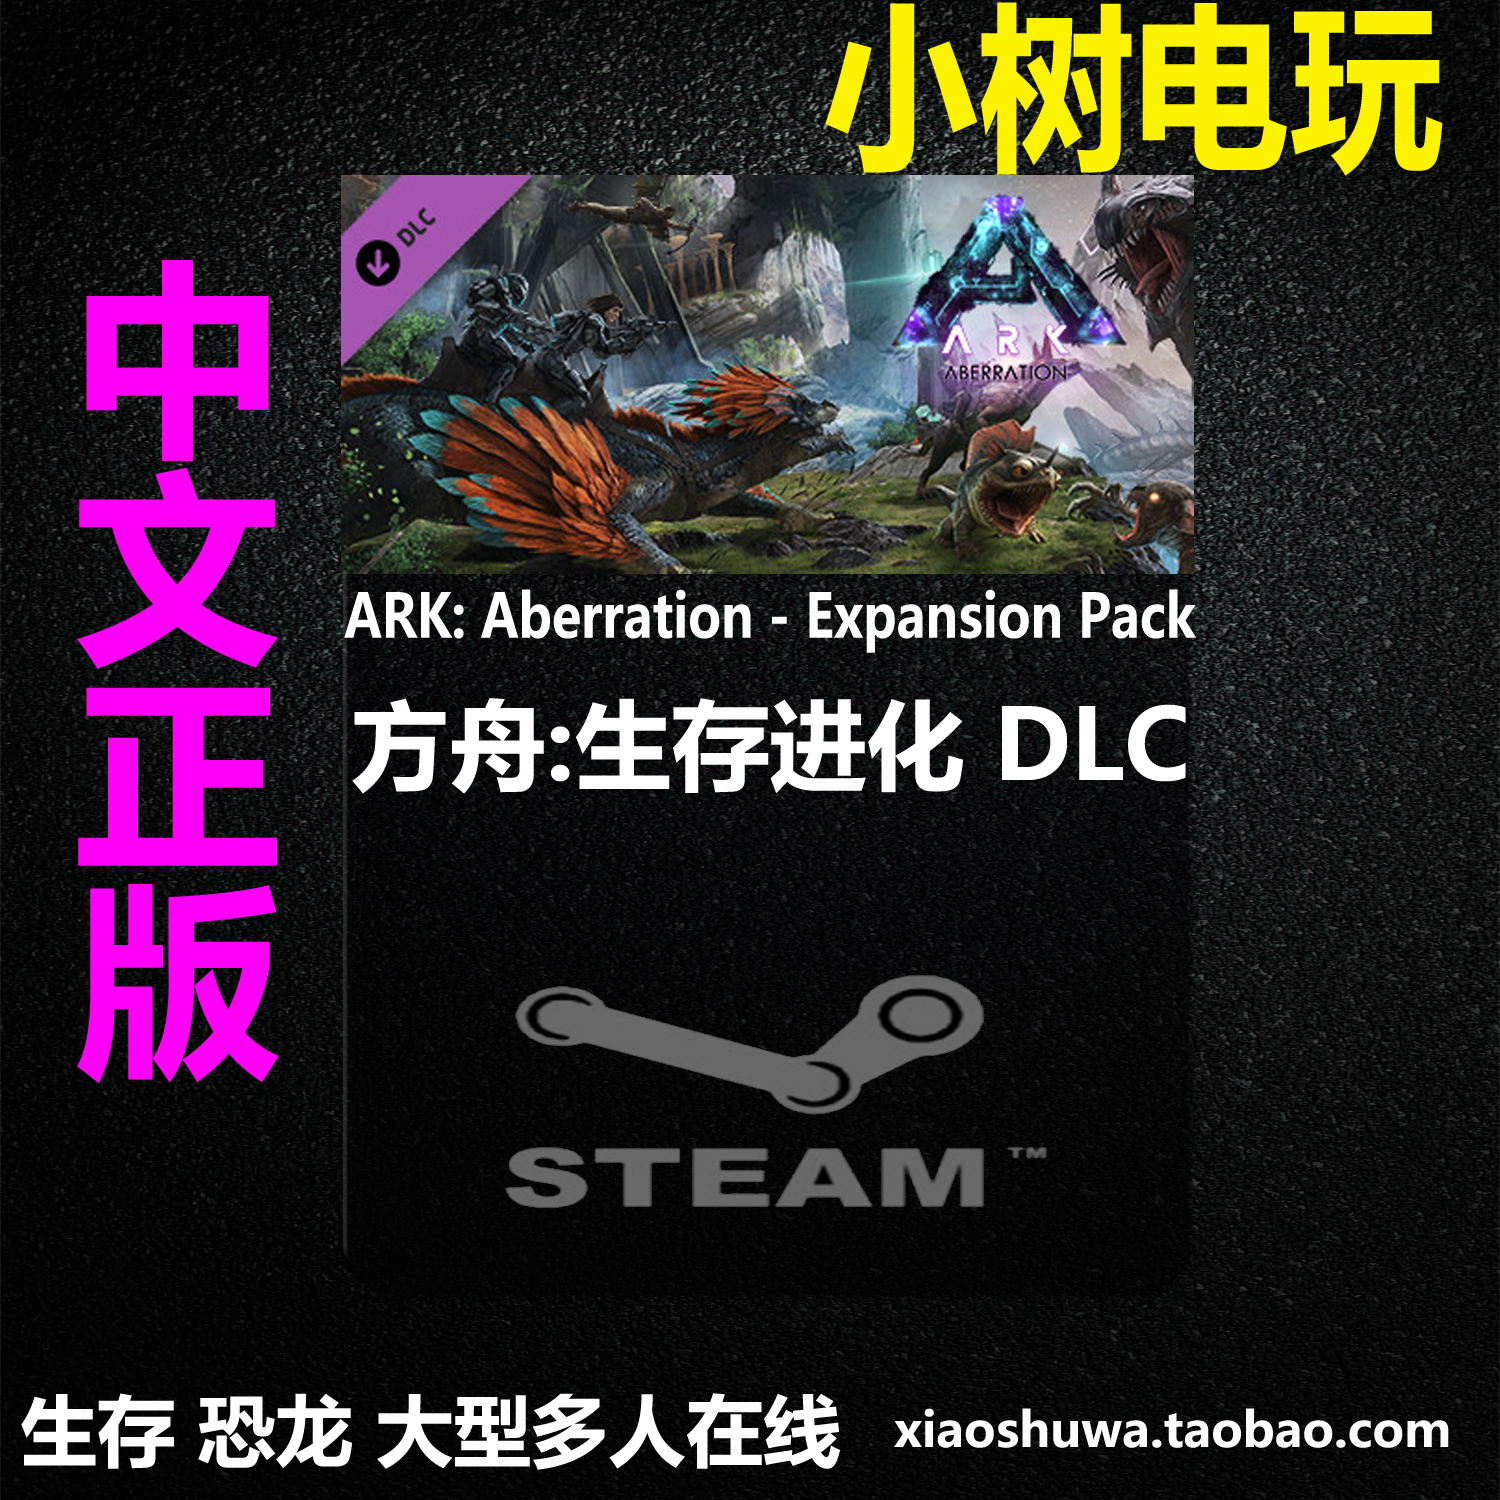 Steam PC正版 ARK: AberrationExpansion Pack 方舟:生存进化DLC